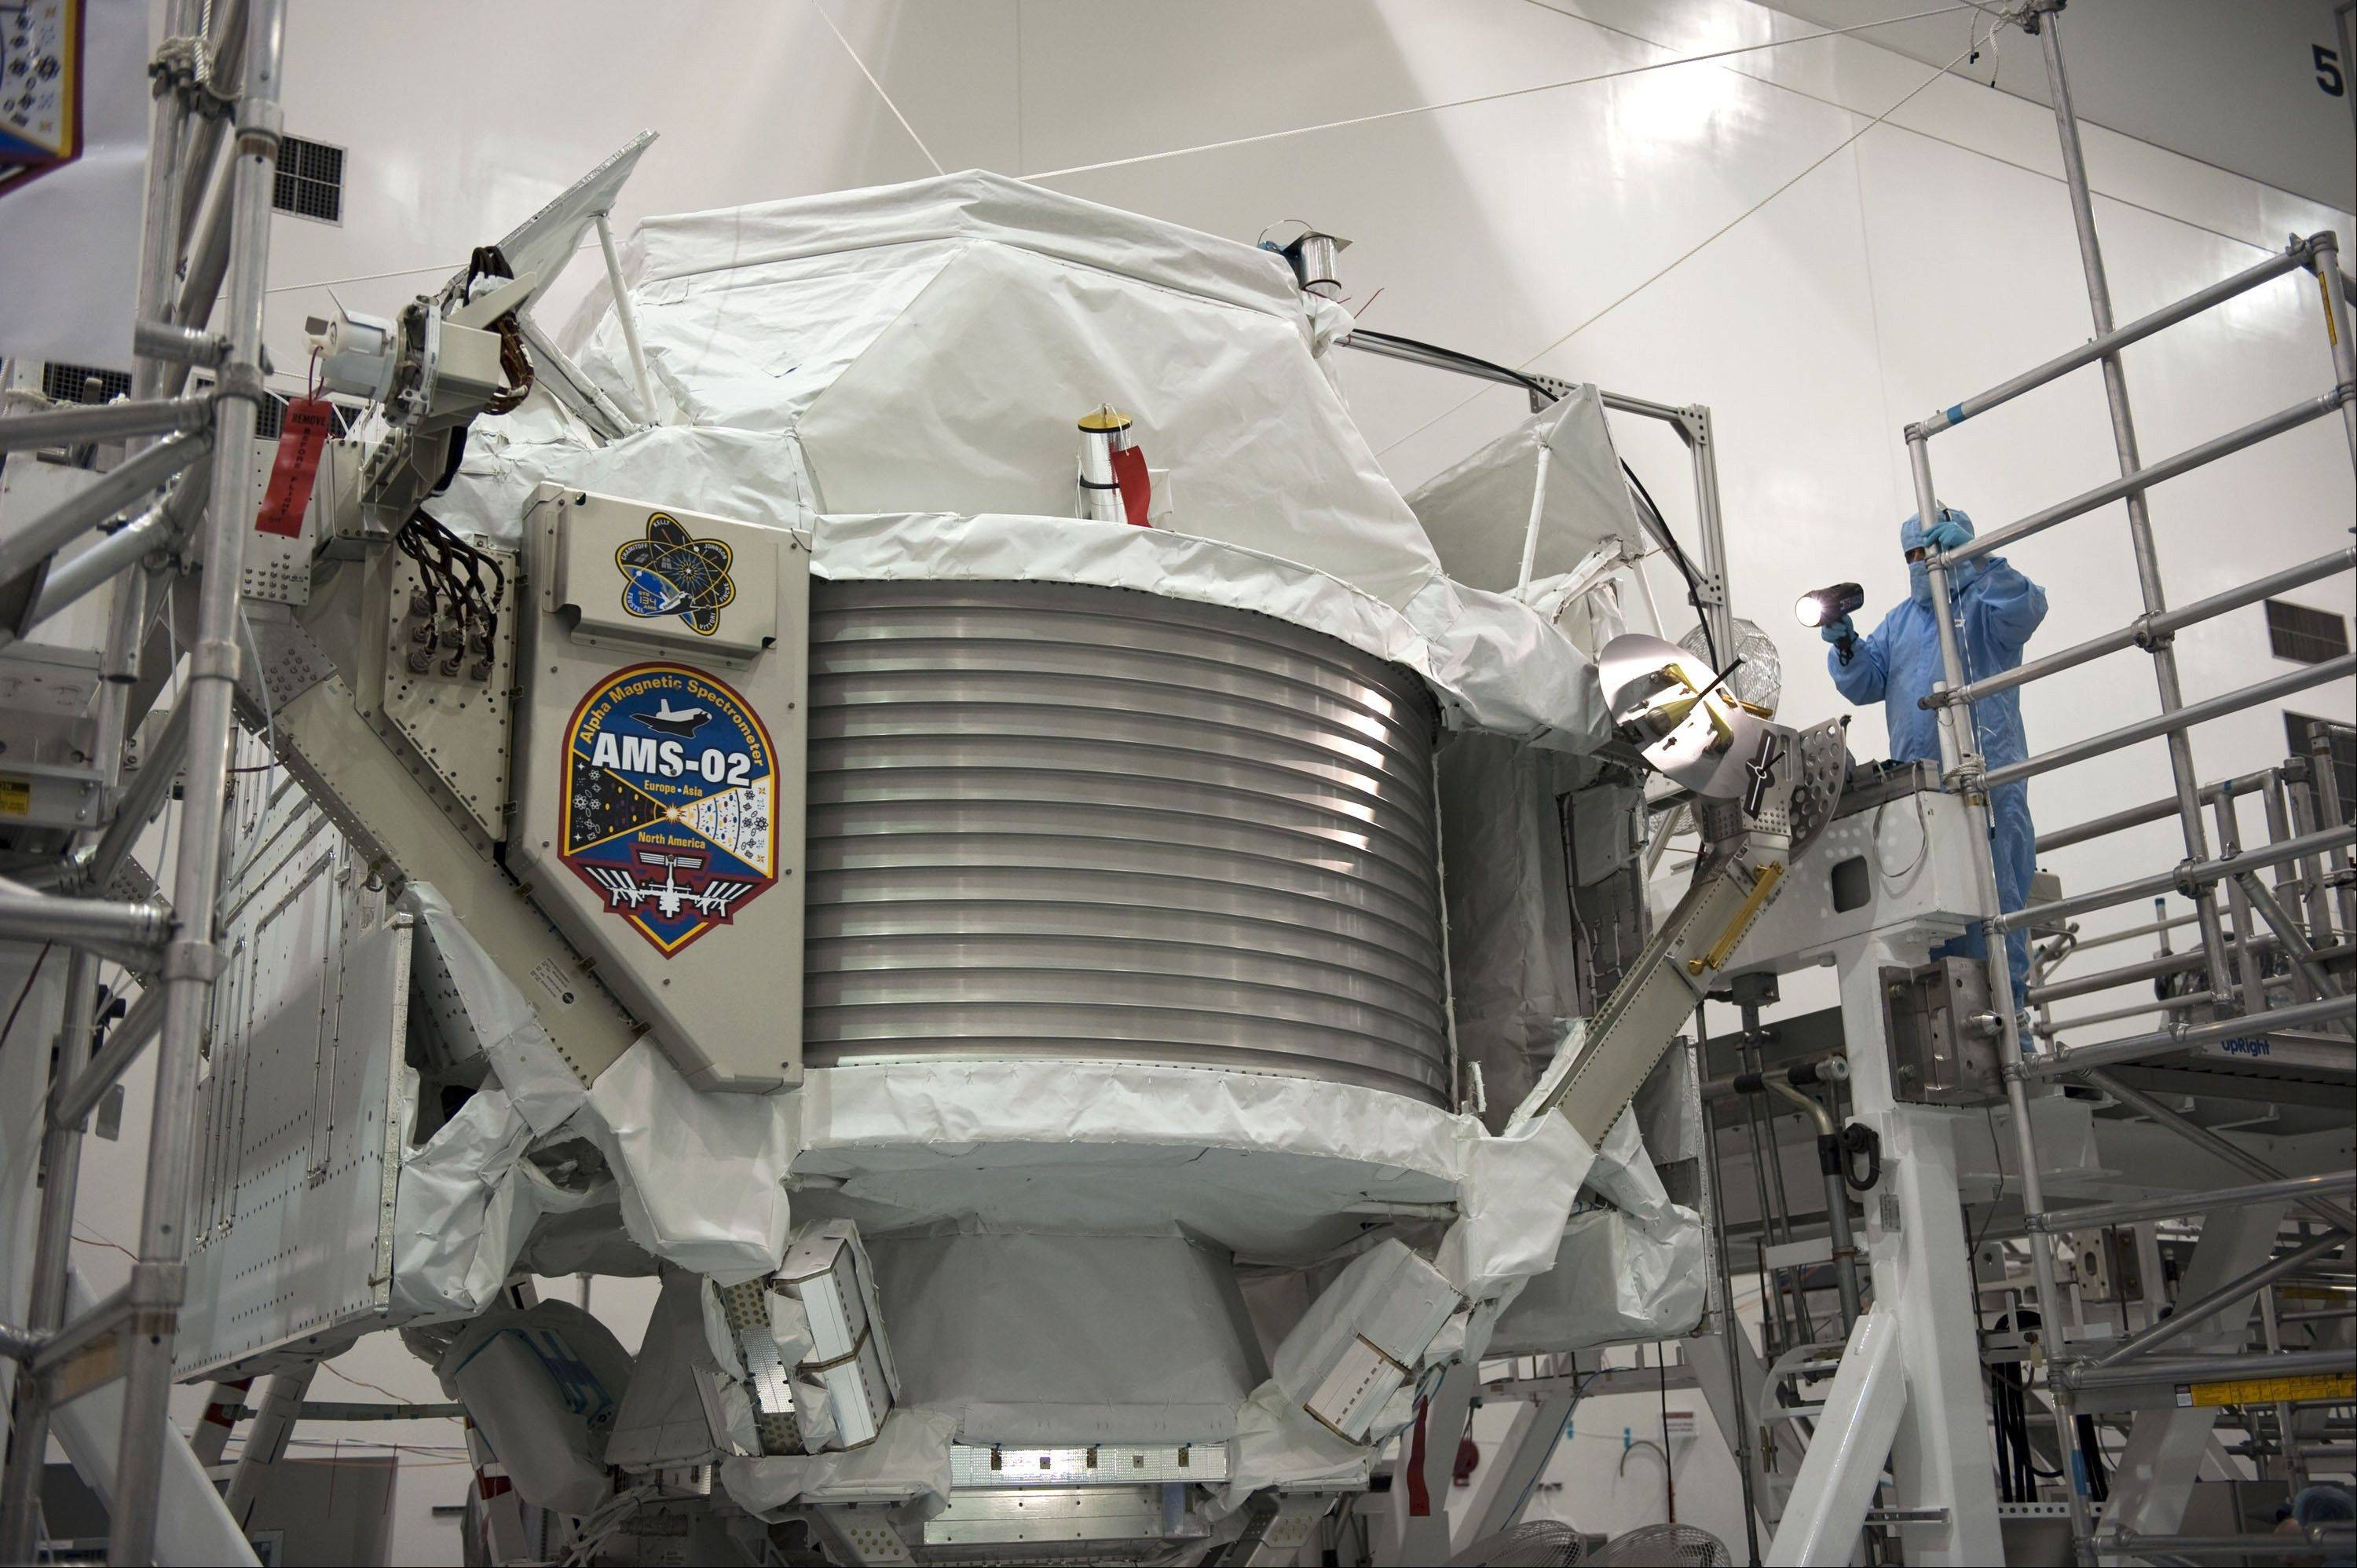 A technician examines the Alpha Magnetic Spectrometer at Kennedy Space Center in Cape Canaveral, Fla. An international team of scientists says the cosmic ray detector has found the first hint of dark matter, which has never yet been directly observed.